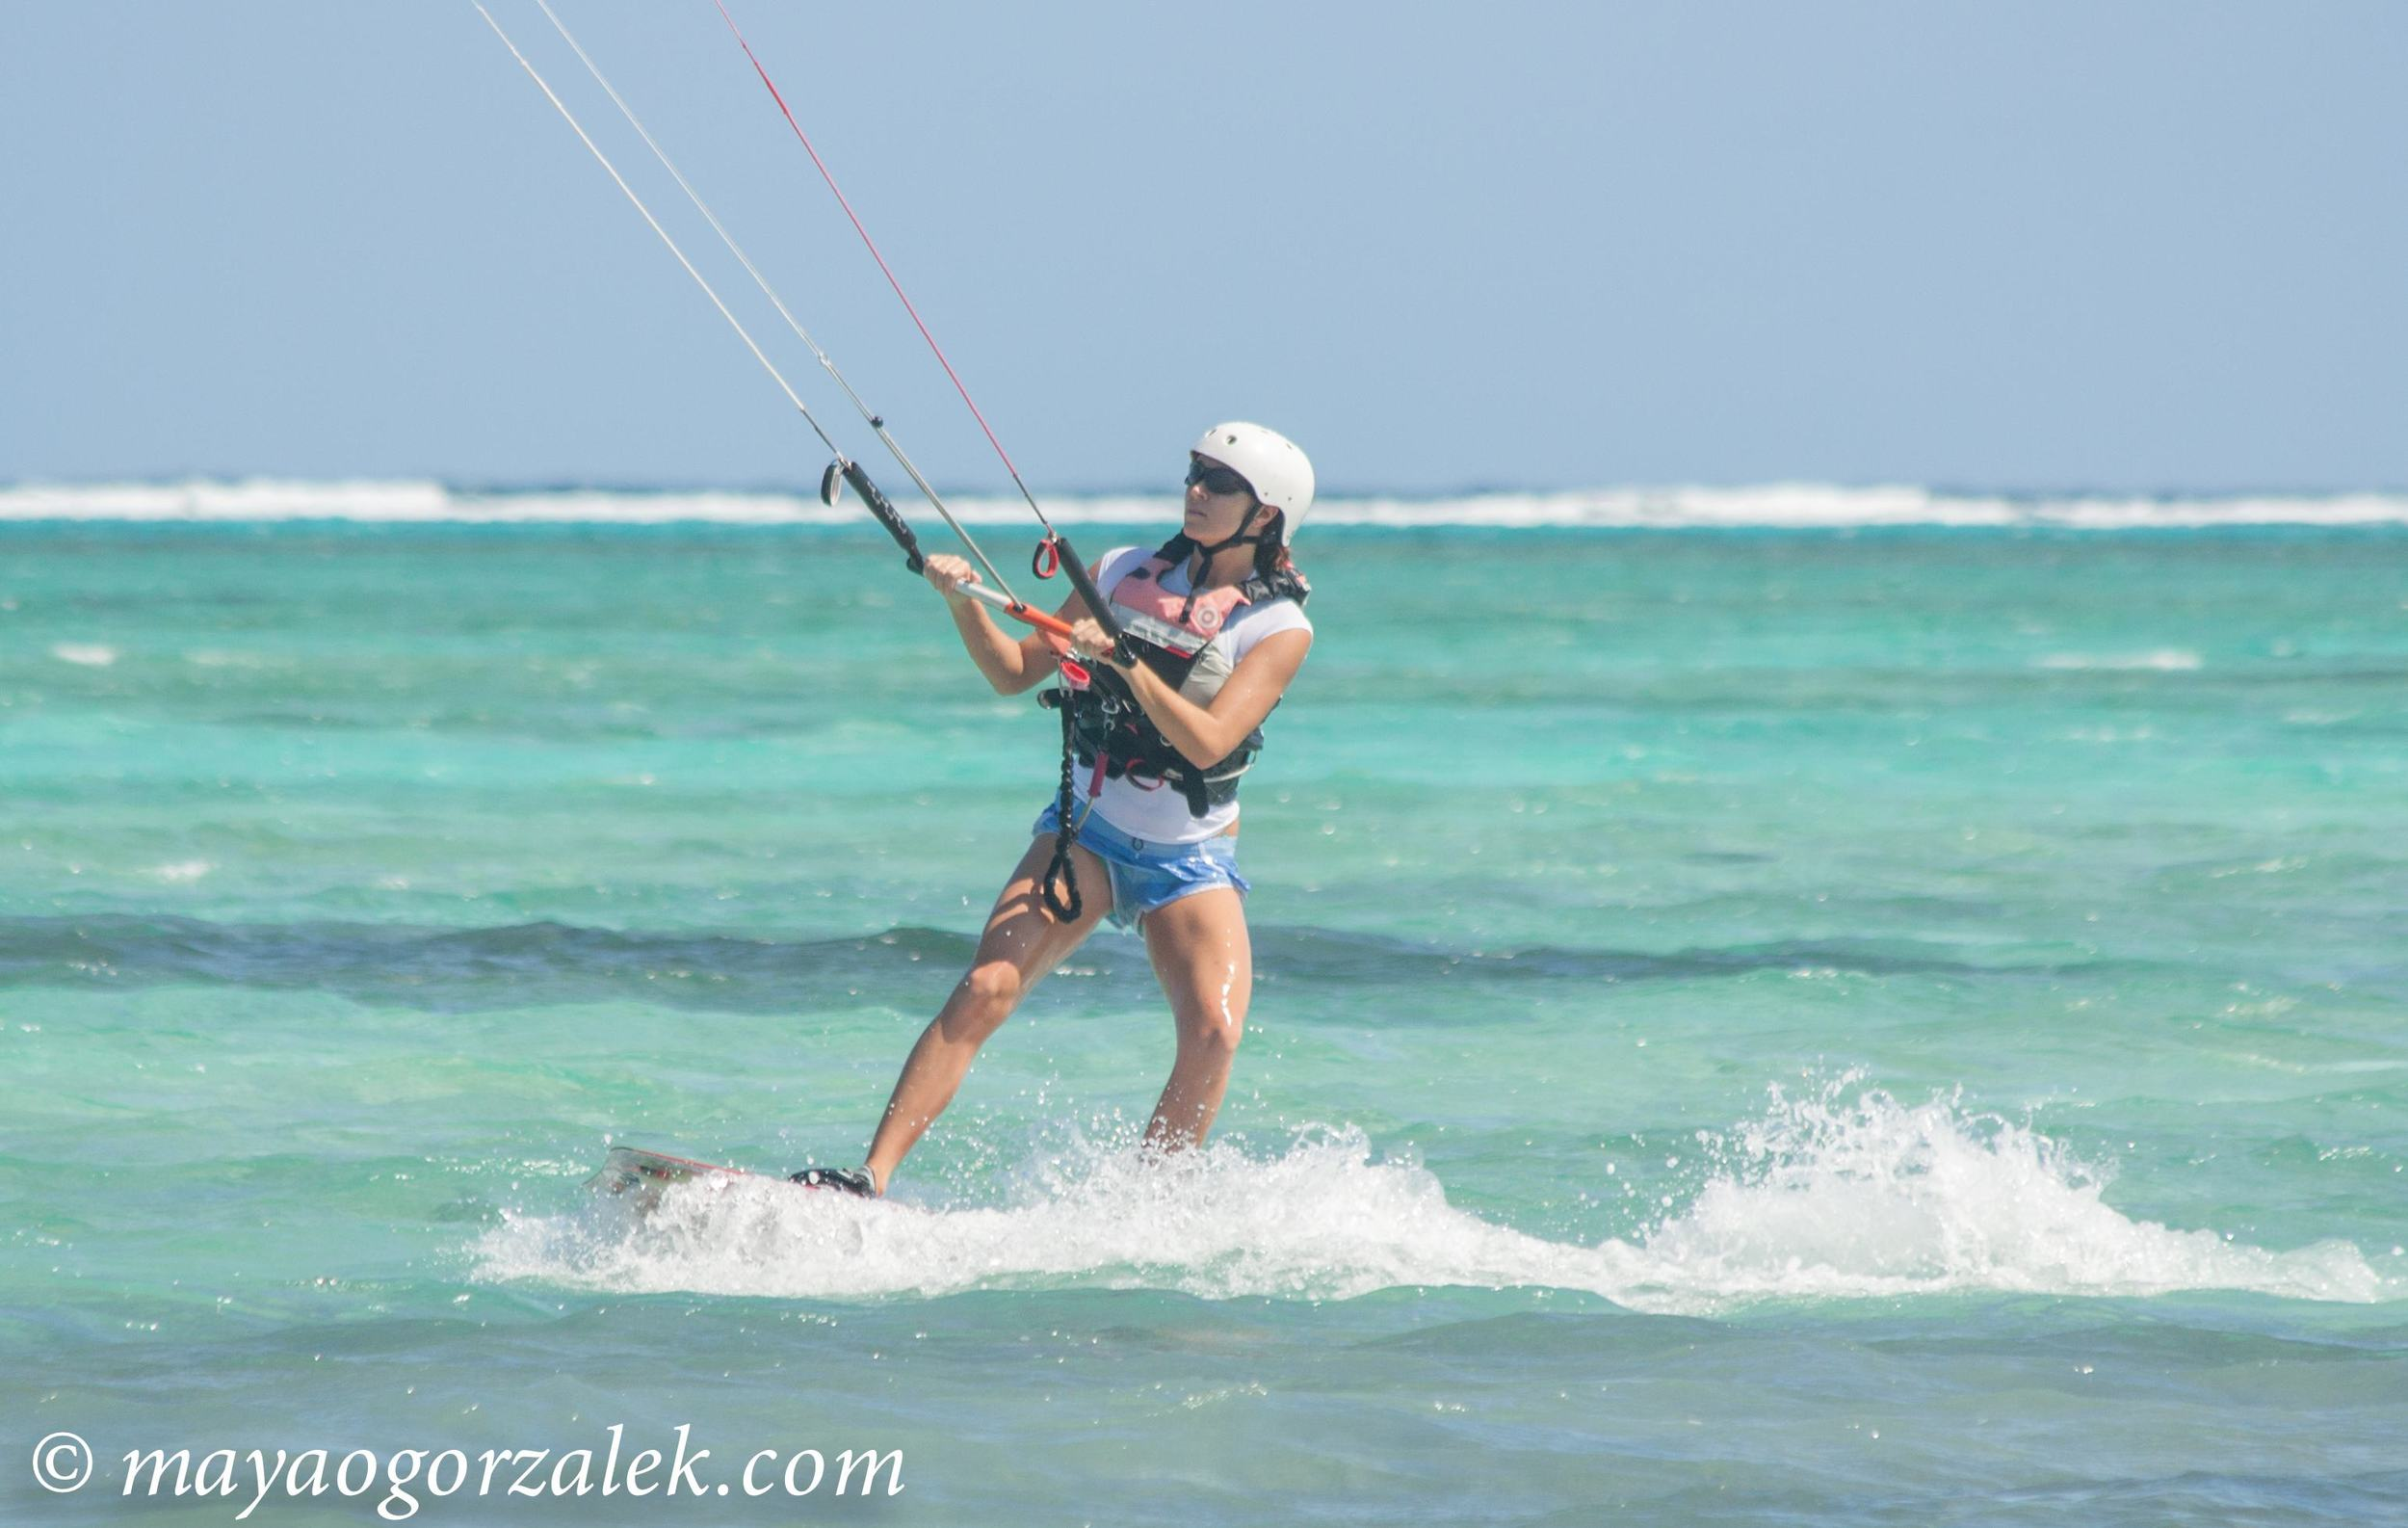 Kate during her 4th lesson with Kitesurf Cayman